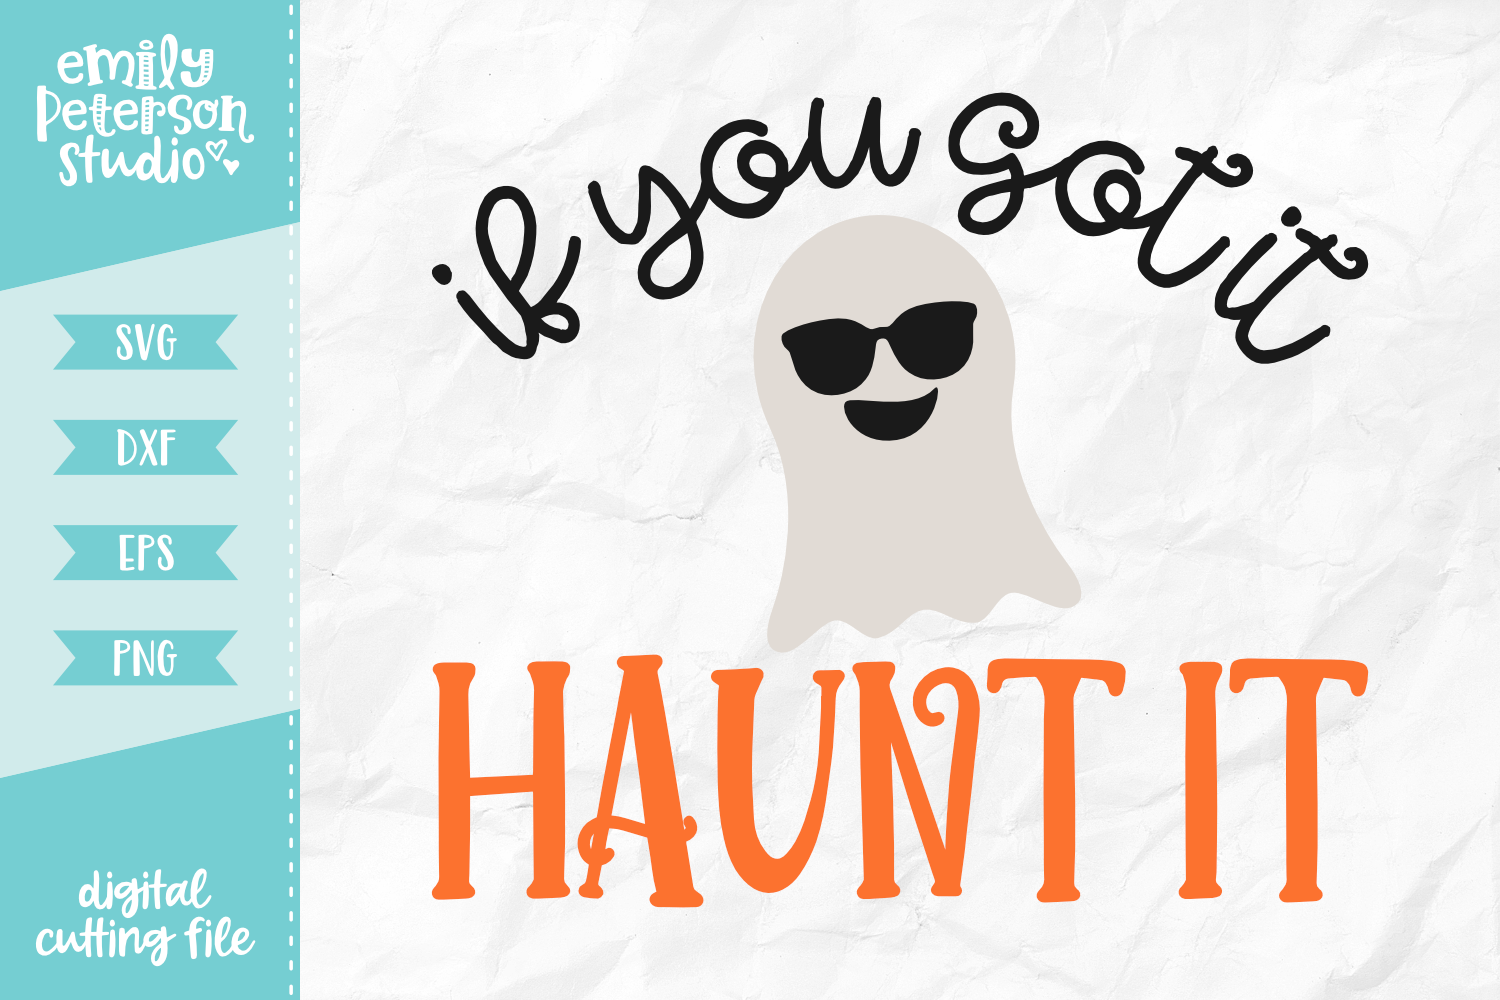 If You Got It Haunt It SVG DXF EPS PNG example image 1